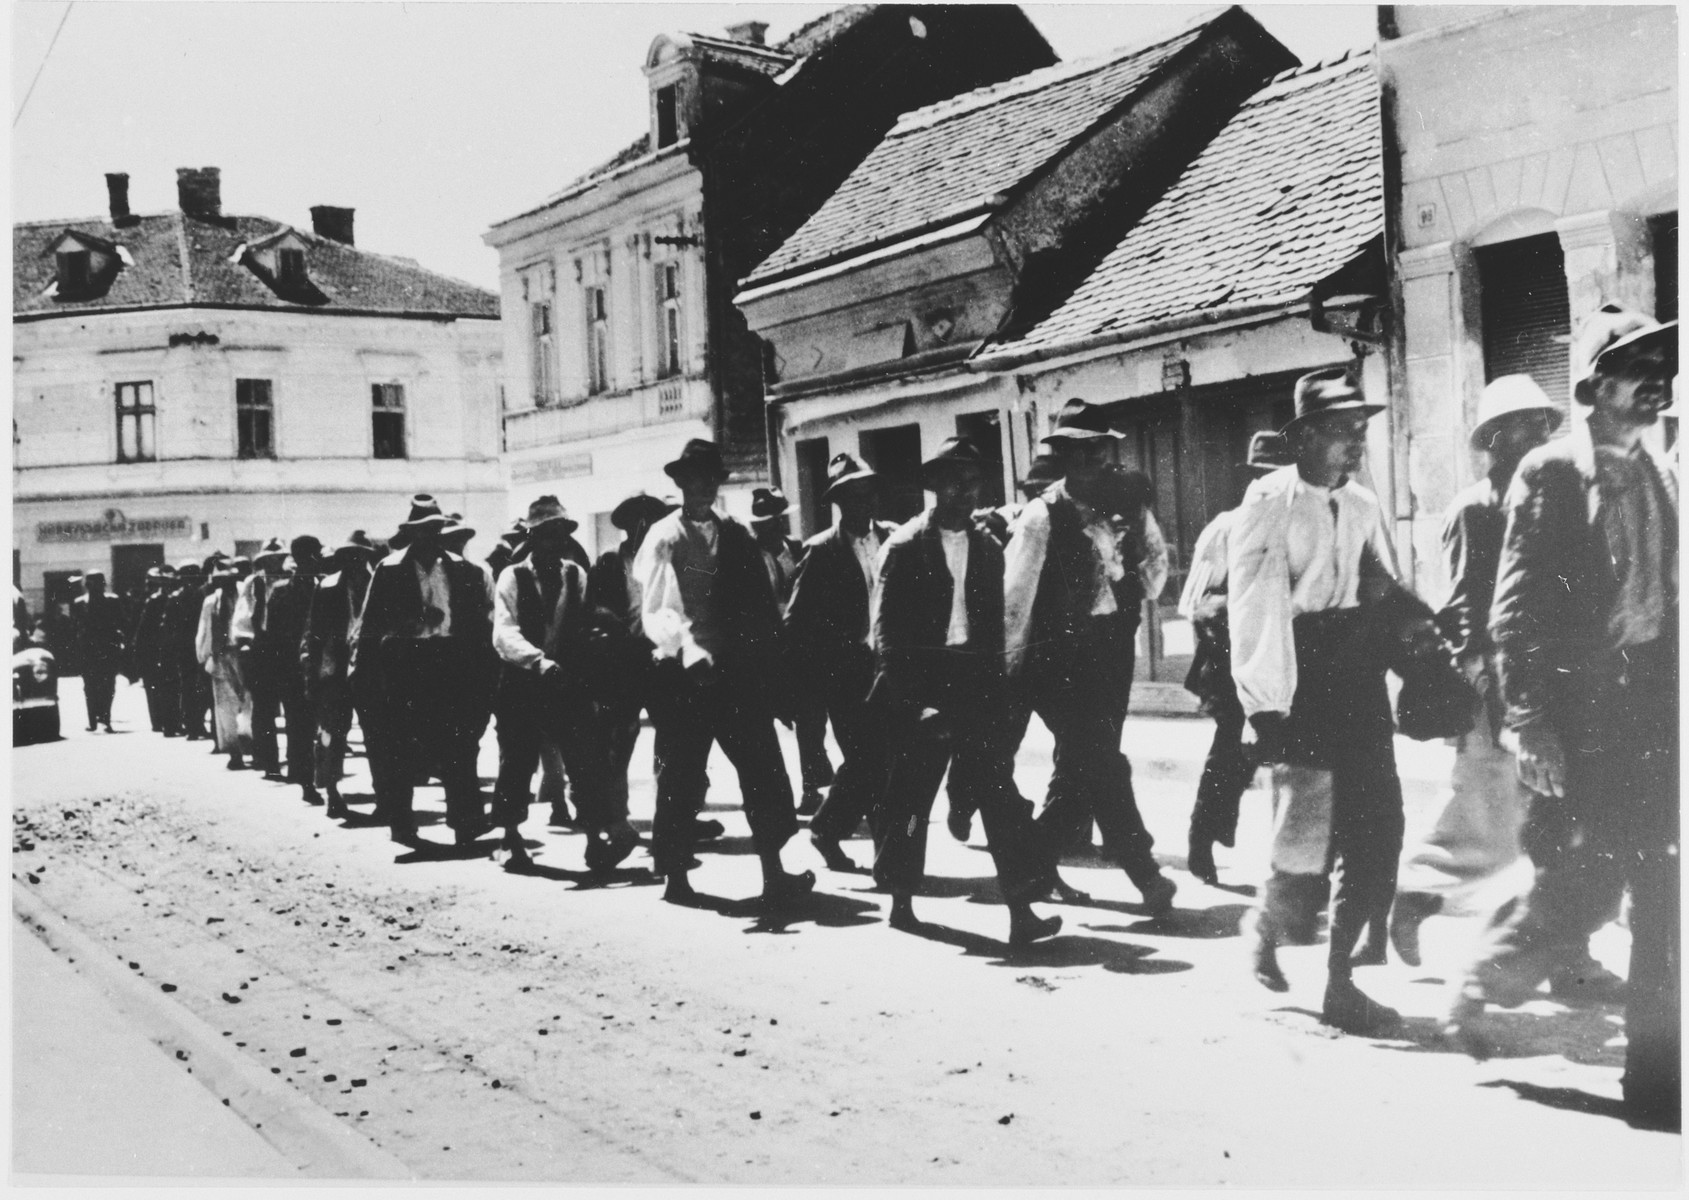 [Probably Serbian villagers from the Kozara region who have been rounded-up for deportation, marching in a column through the streets of a town.]